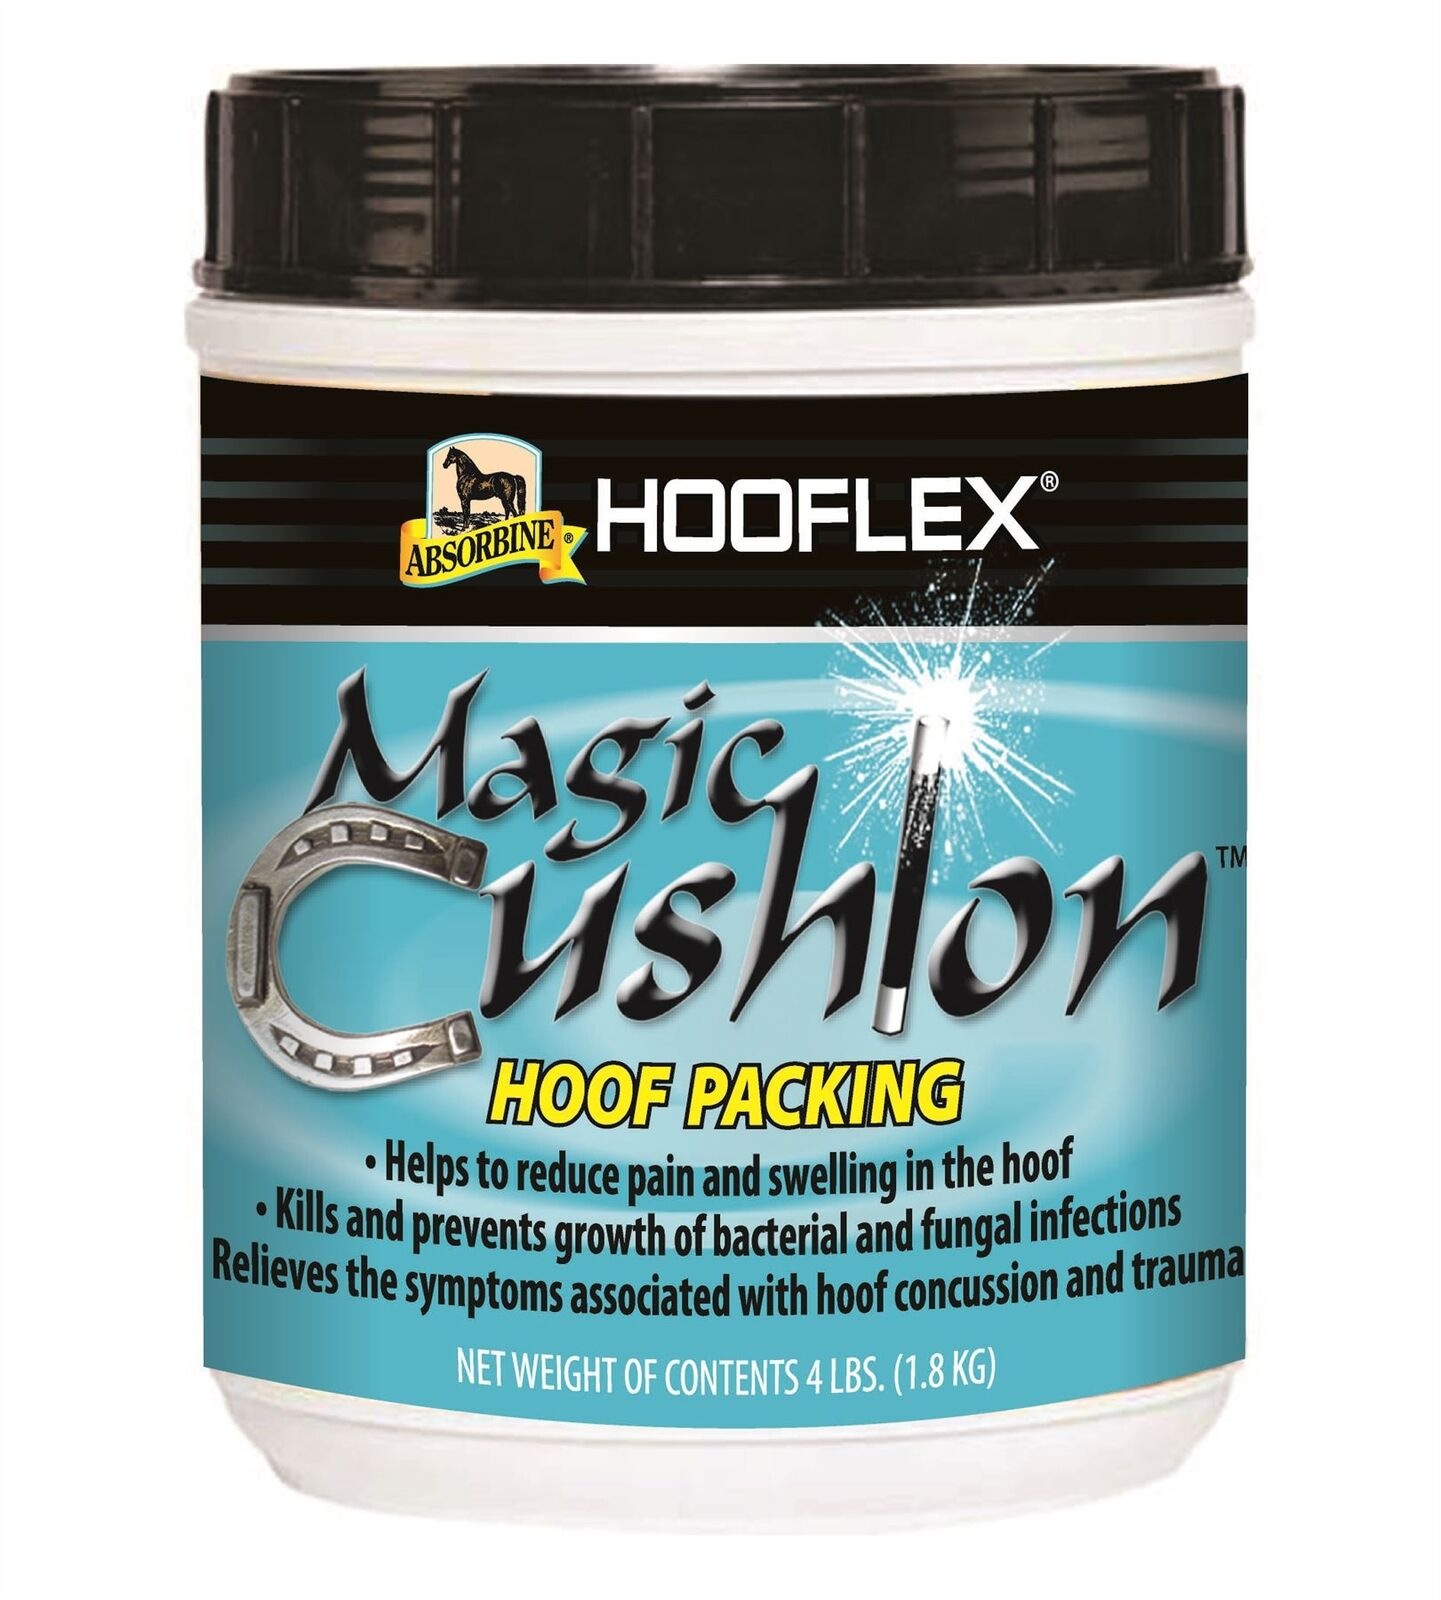 Absorbine Hooflex Magic Amortiguador 1.8 kg Caballo & PONY